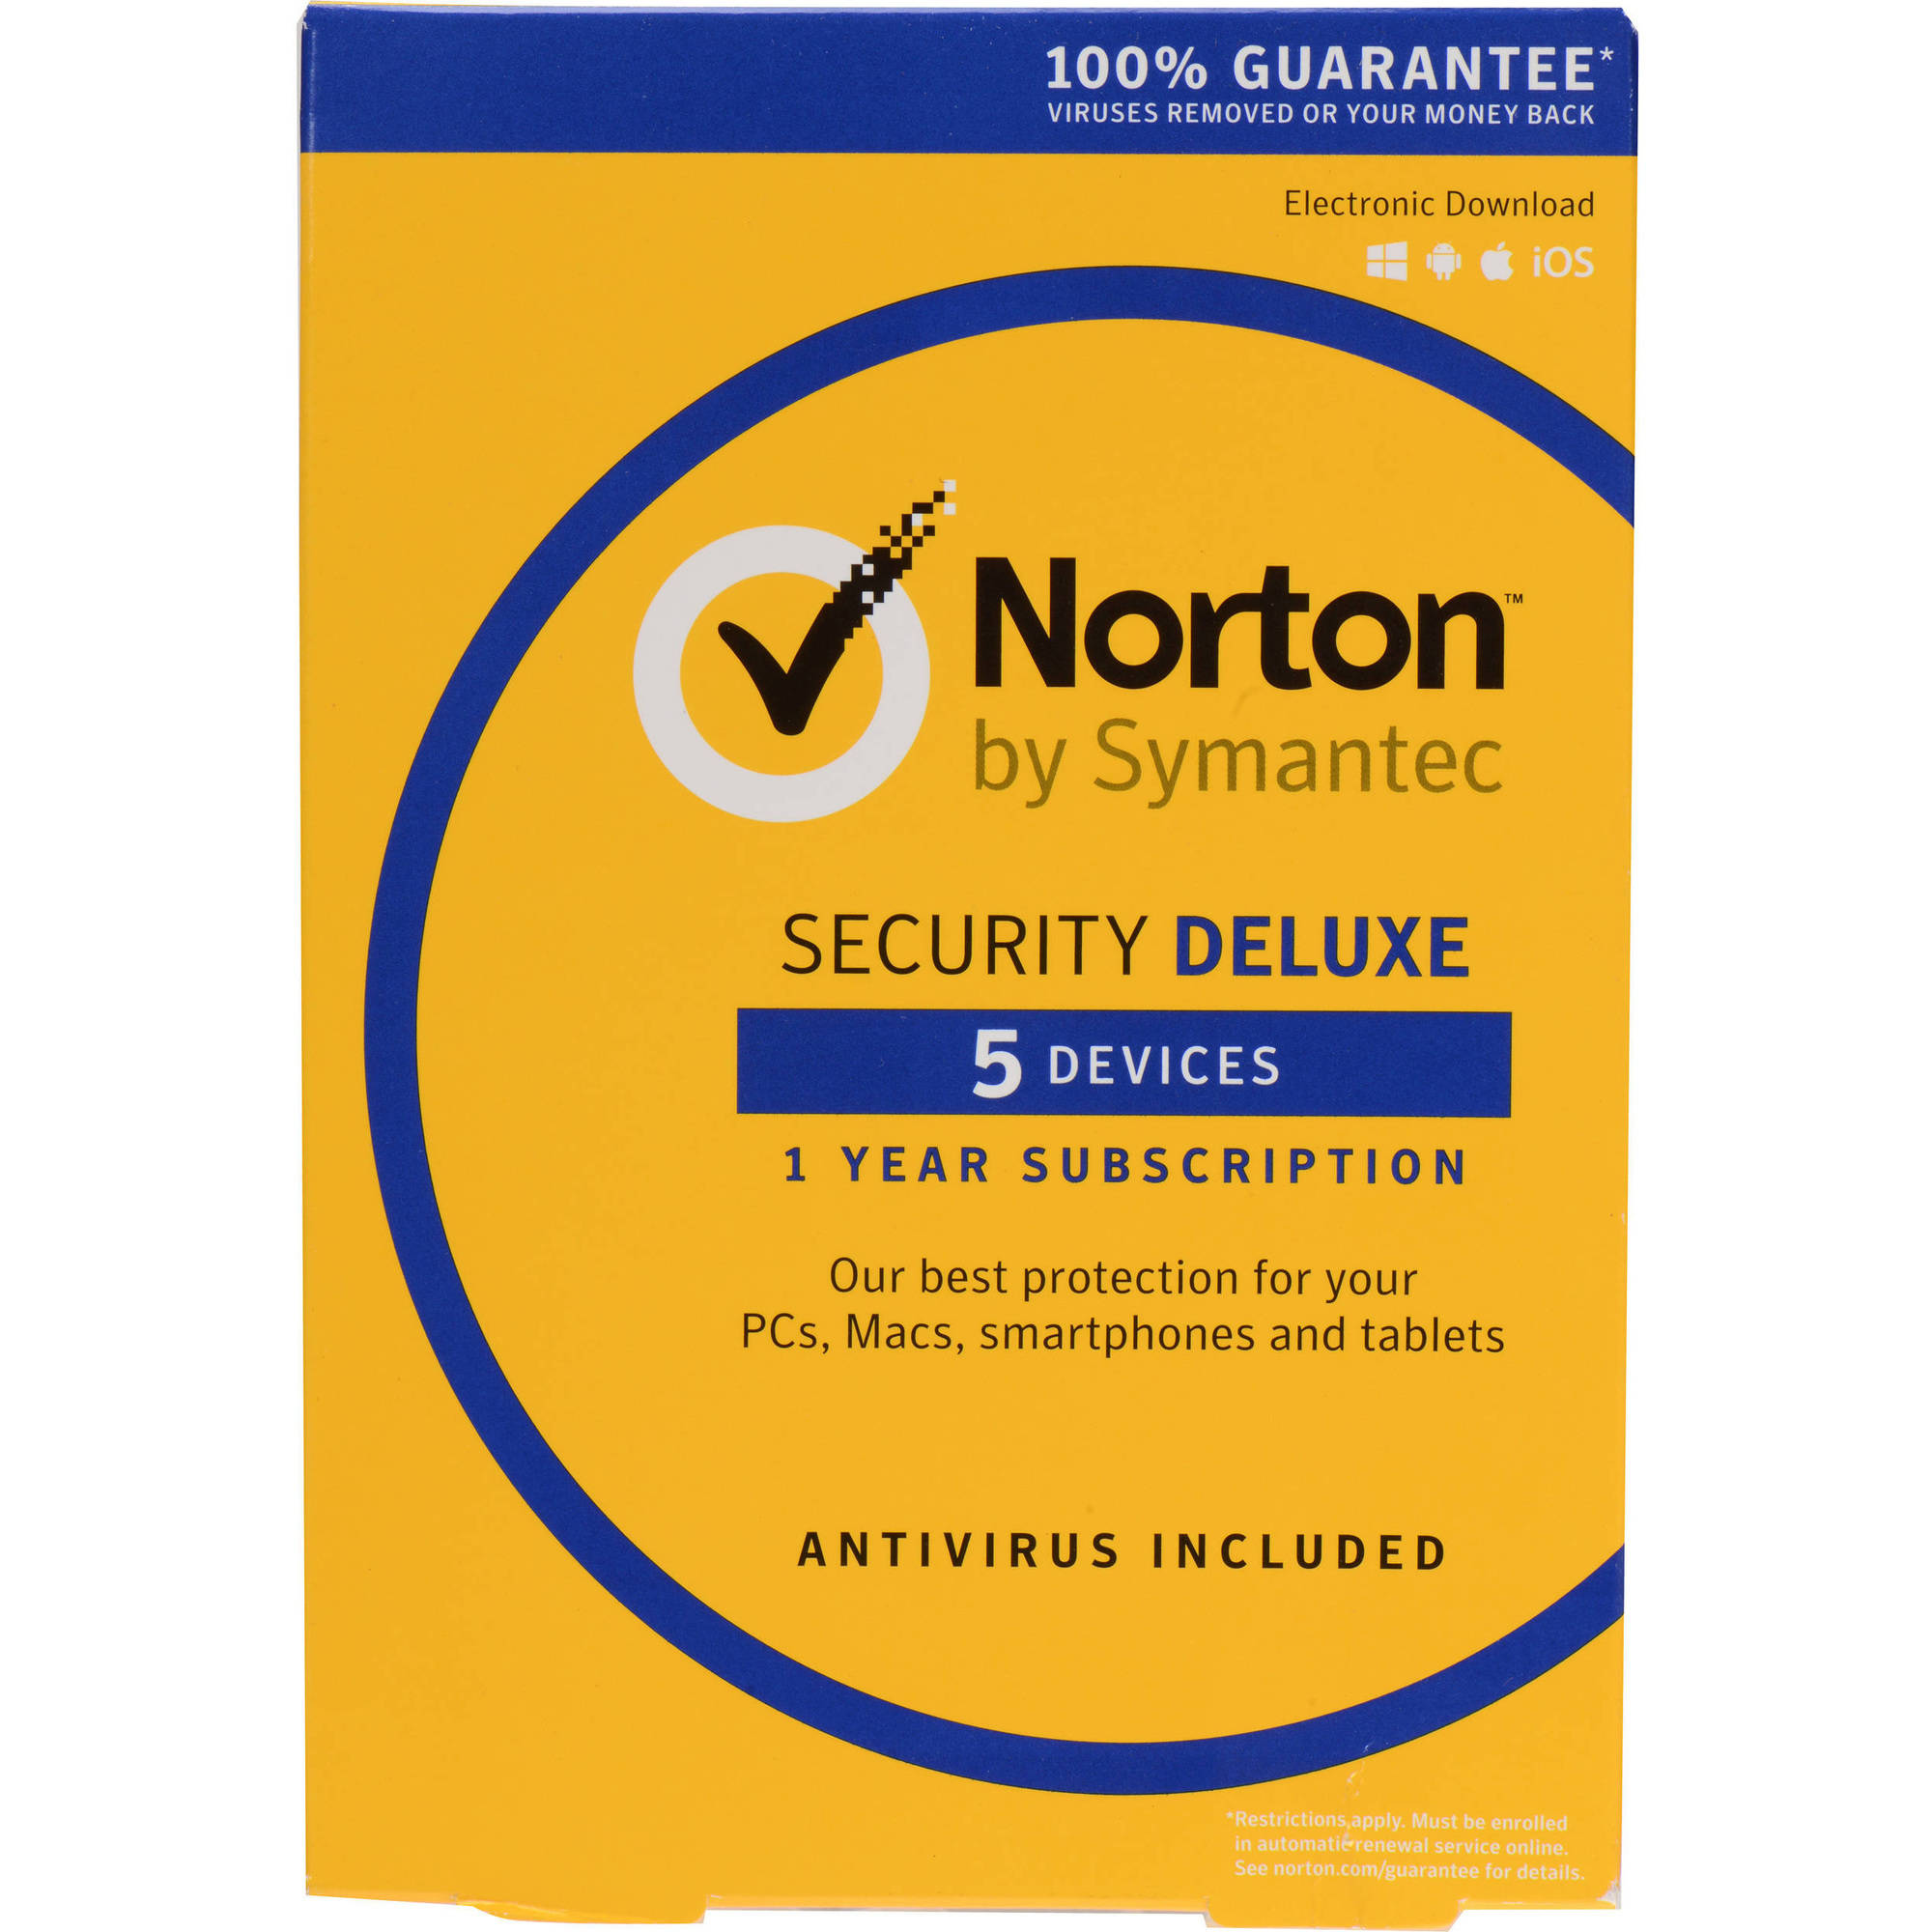 Symantec 21358875 Norton Security Deluxe, 5 Devices (Email Delivery) by Symantec